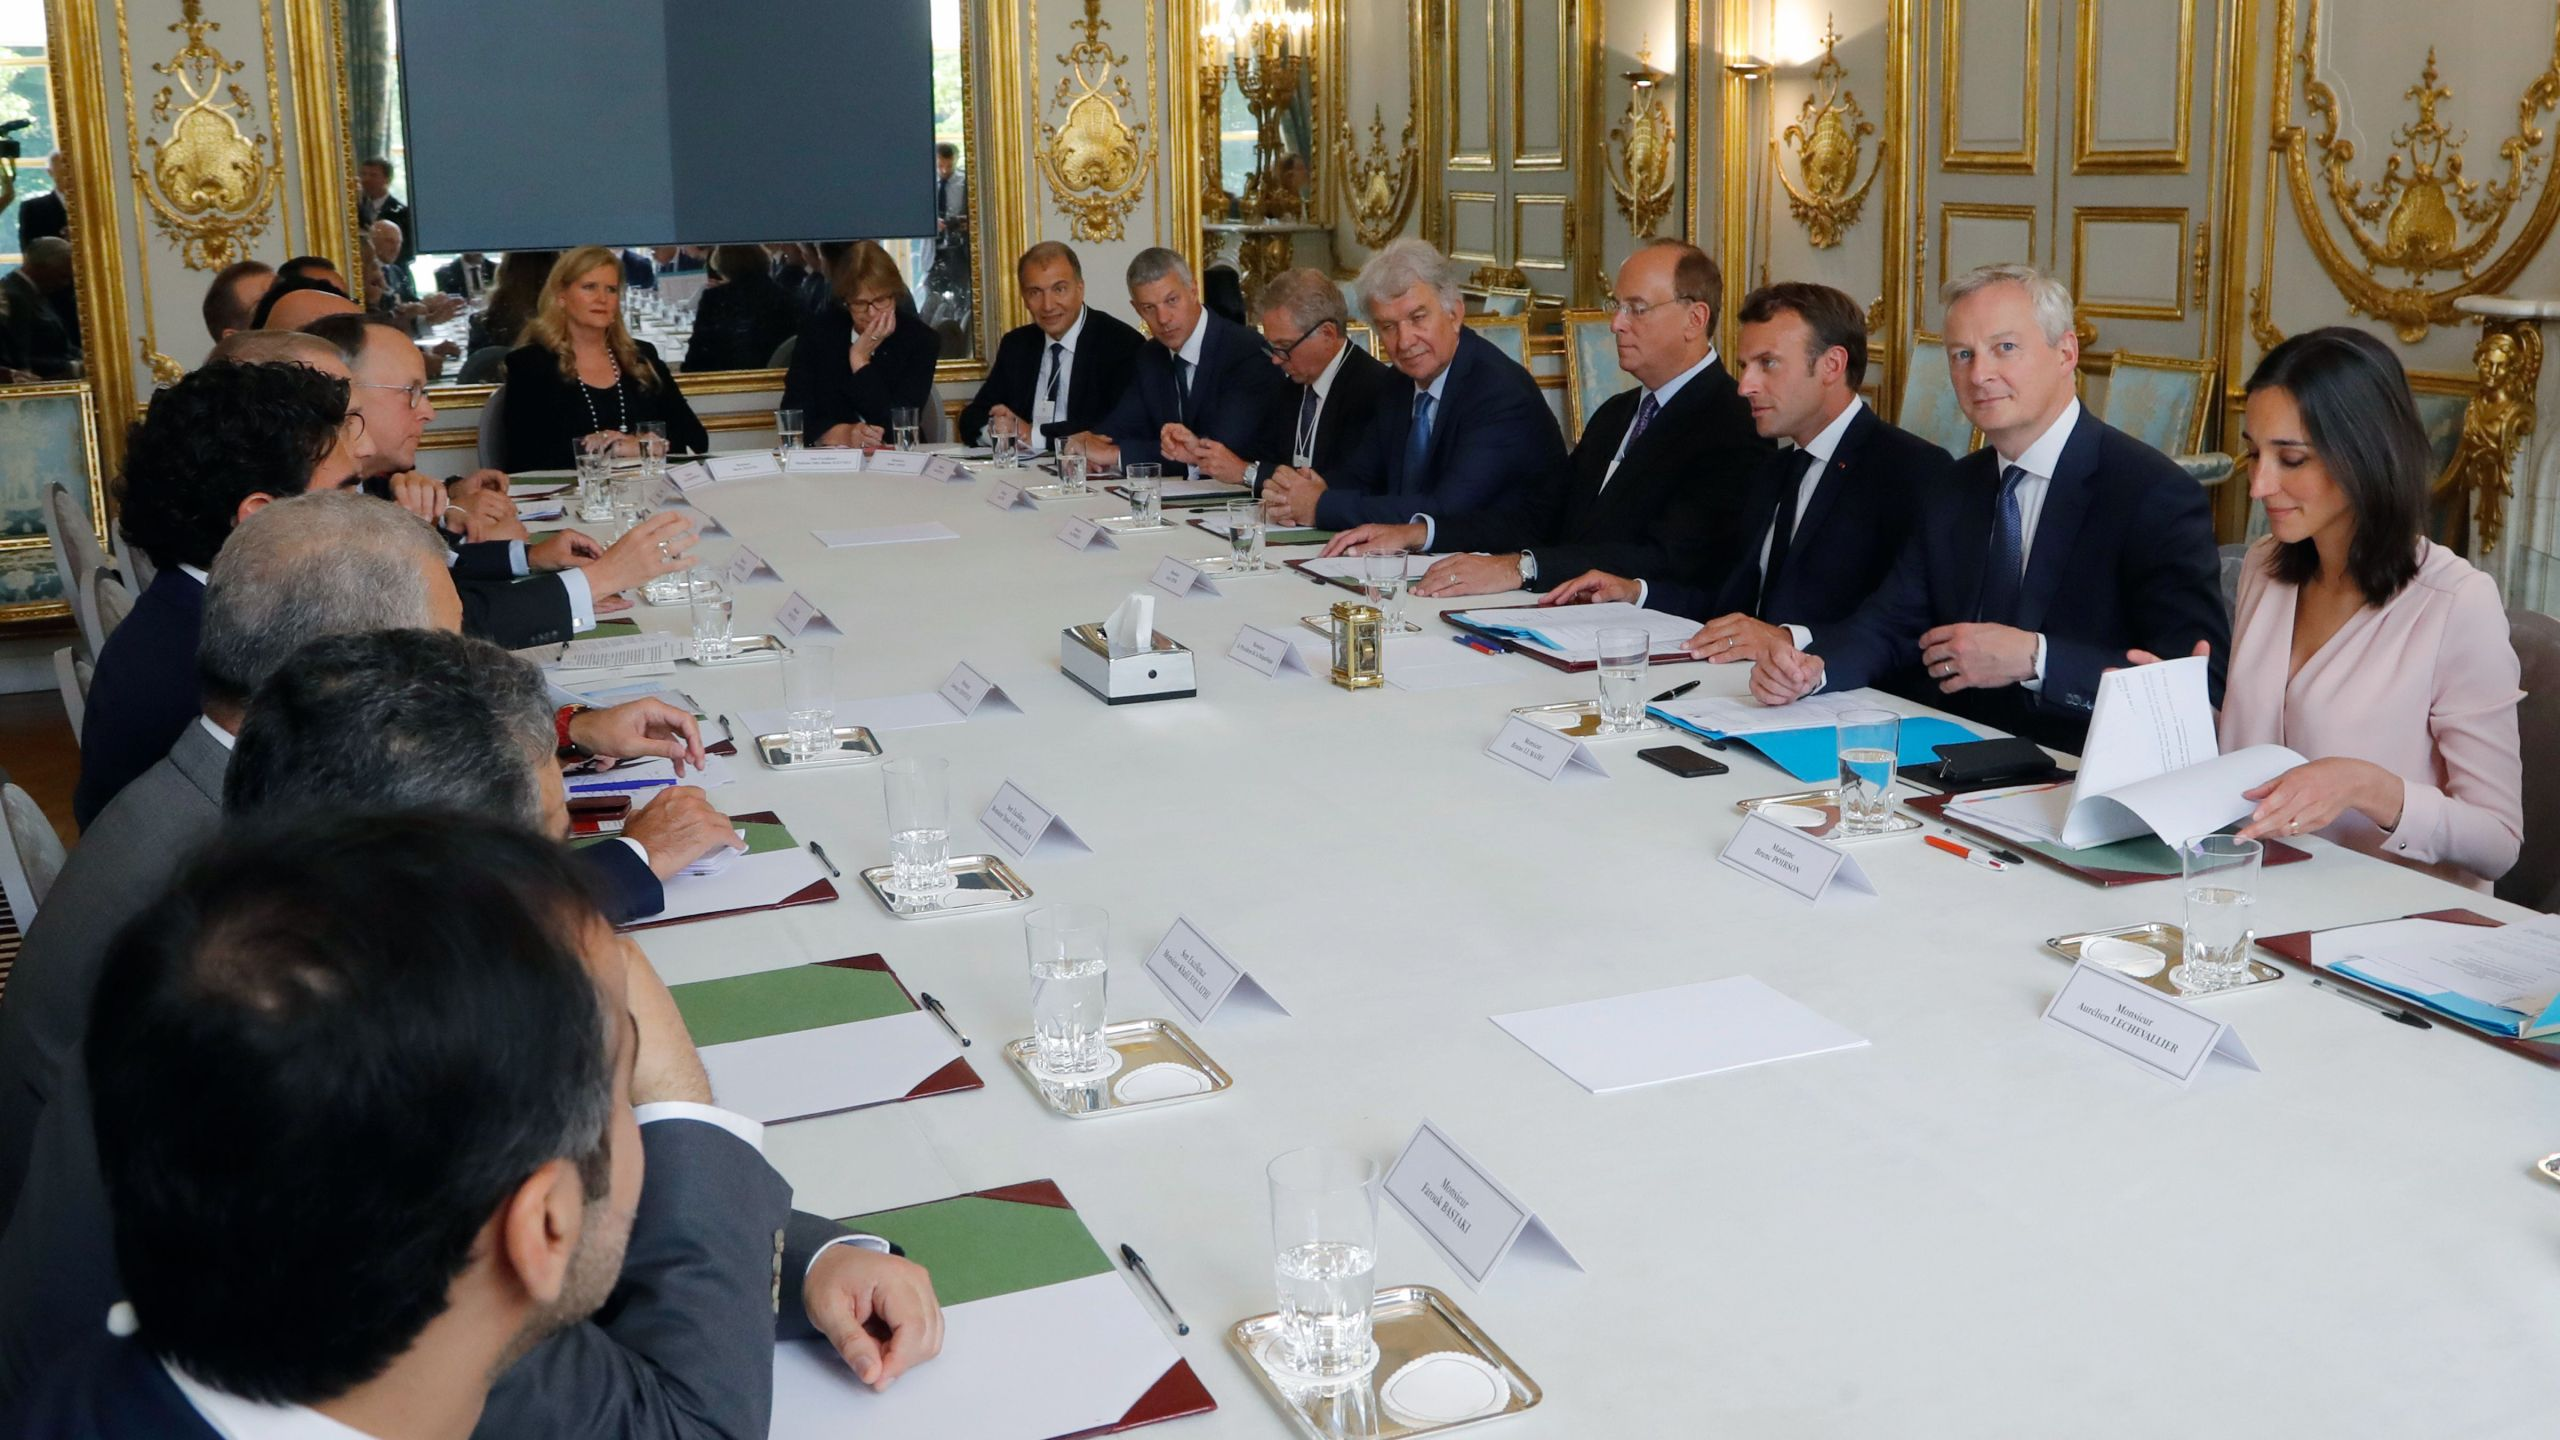 French Junior Minister for Environment Brune Poirson (right) and French Economy and Finance Minister Bruno Le Maire (second from right) attend a meeting between the French President Emmanuel Macron and representatives of investment funds and sovereign wealth funds to fight climate change at the Elysee Palace in Paris on July 10, 2019. (Credit: Michel Euler / POOL / AFP / Getty Images)